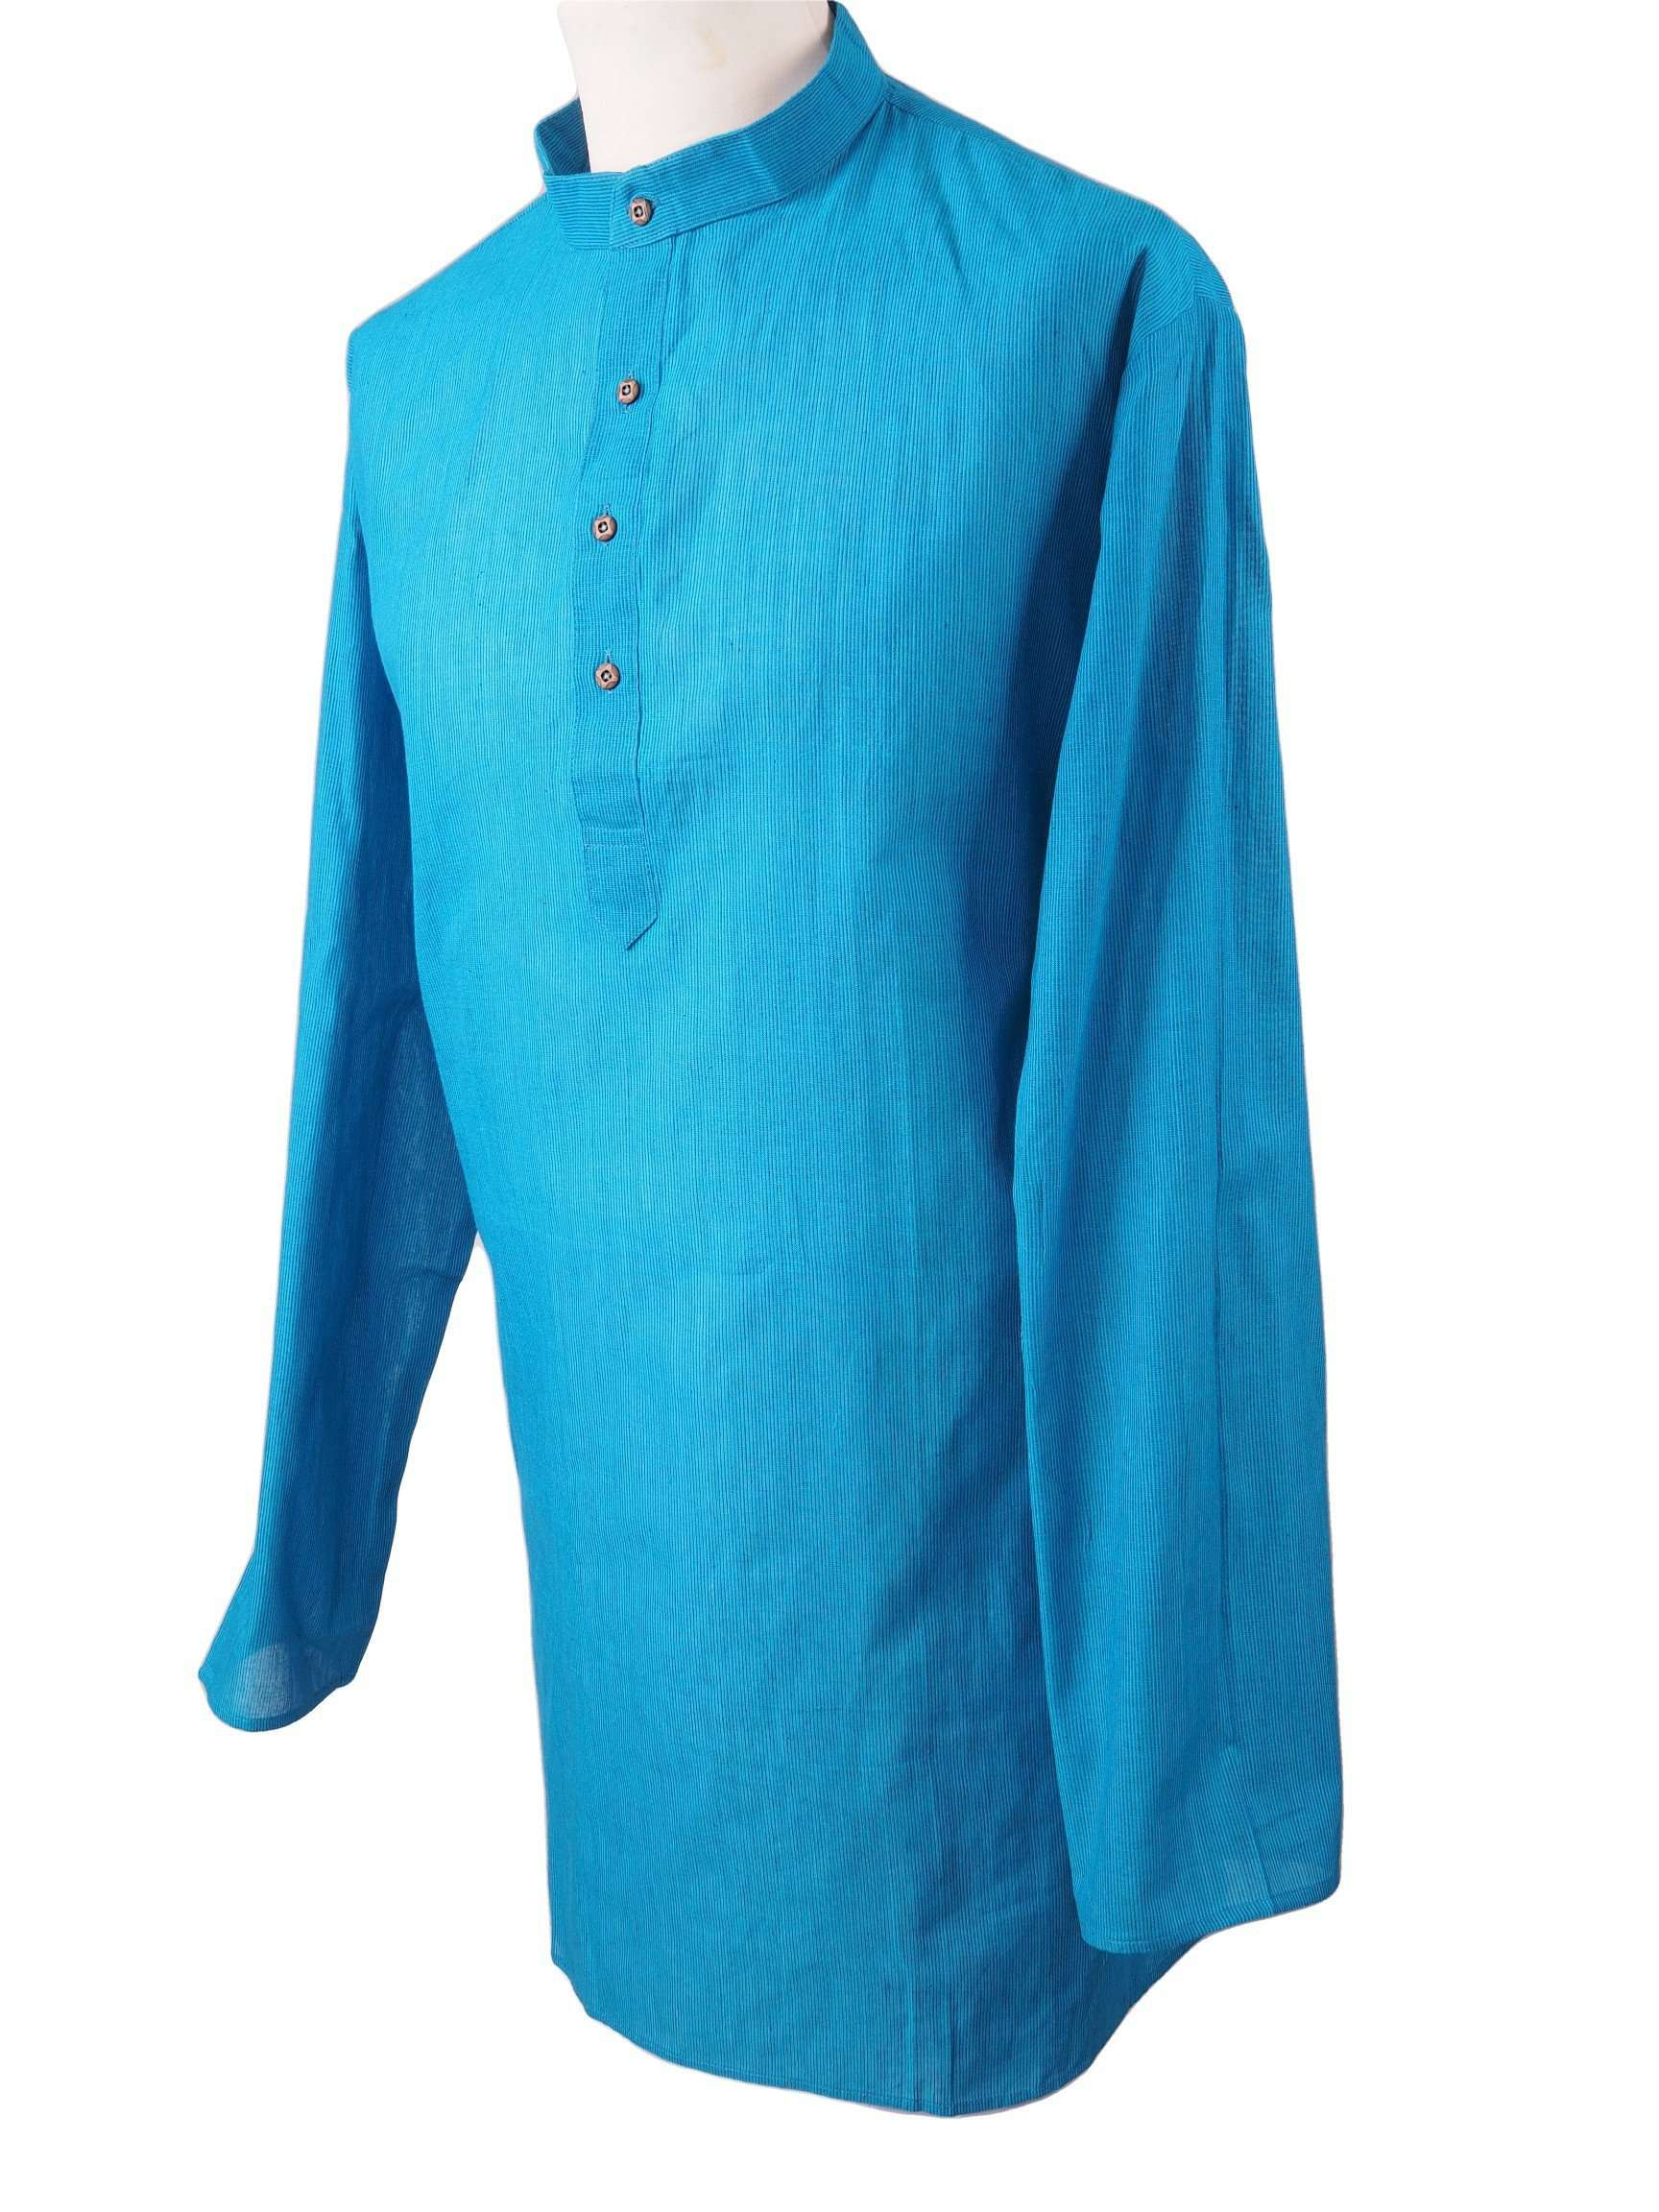 Astra - Turquoise Cotton Kurta top - Mens Indian shirt - Ideal on a pair of jeans - R0718 - Prachy Creations